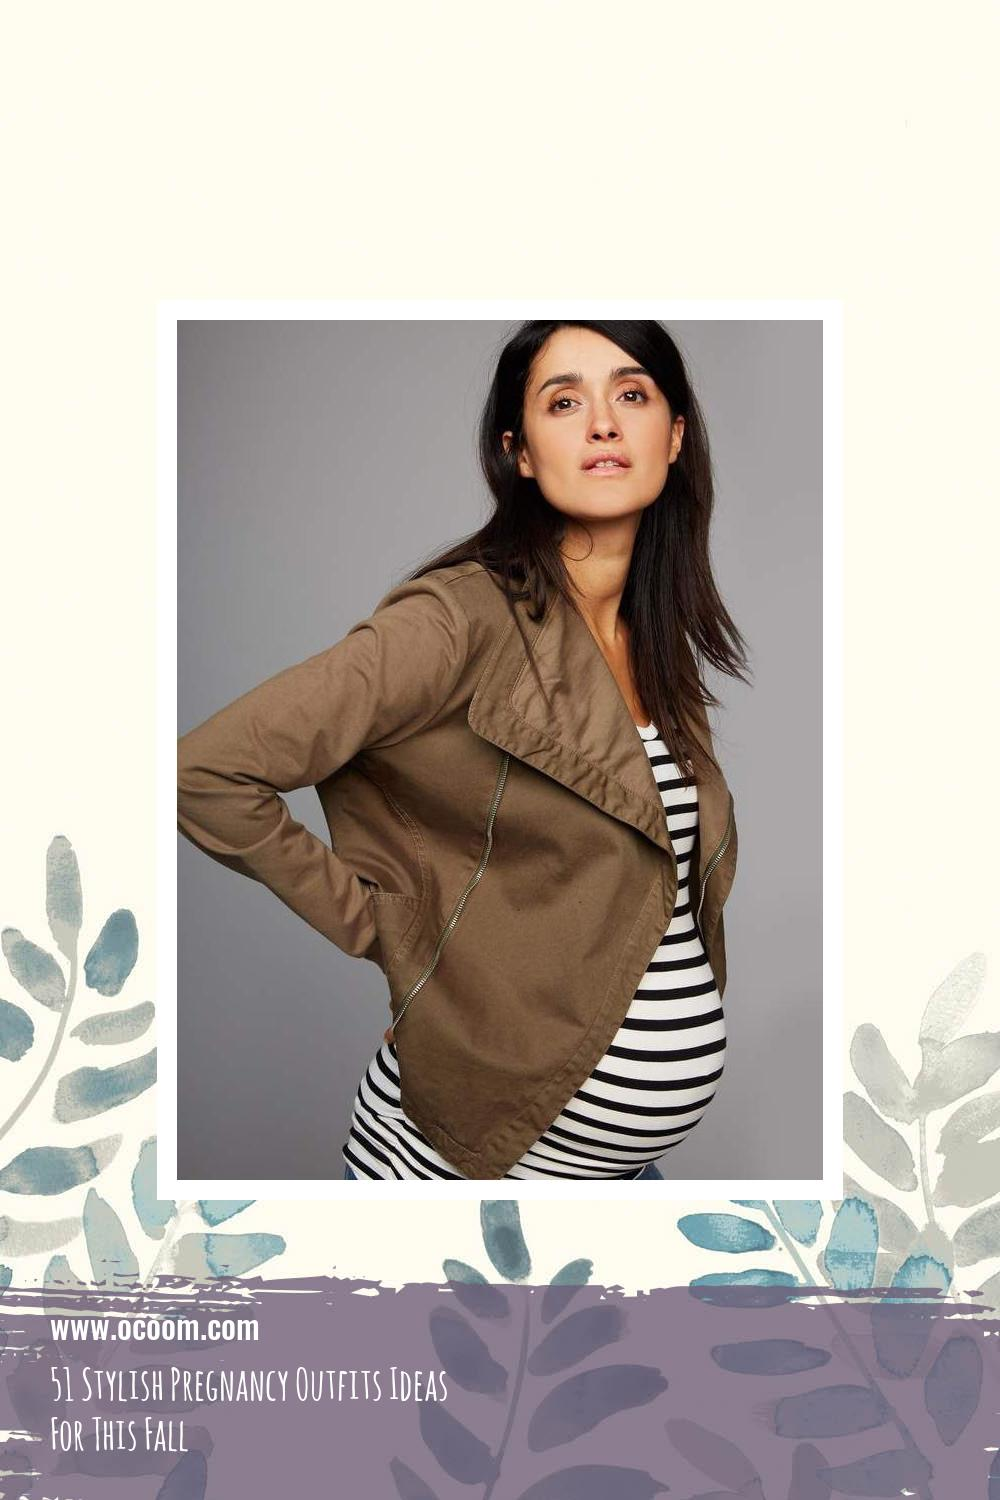 51 Stylish Pregnancy Outfits Ideas For This Fall 1